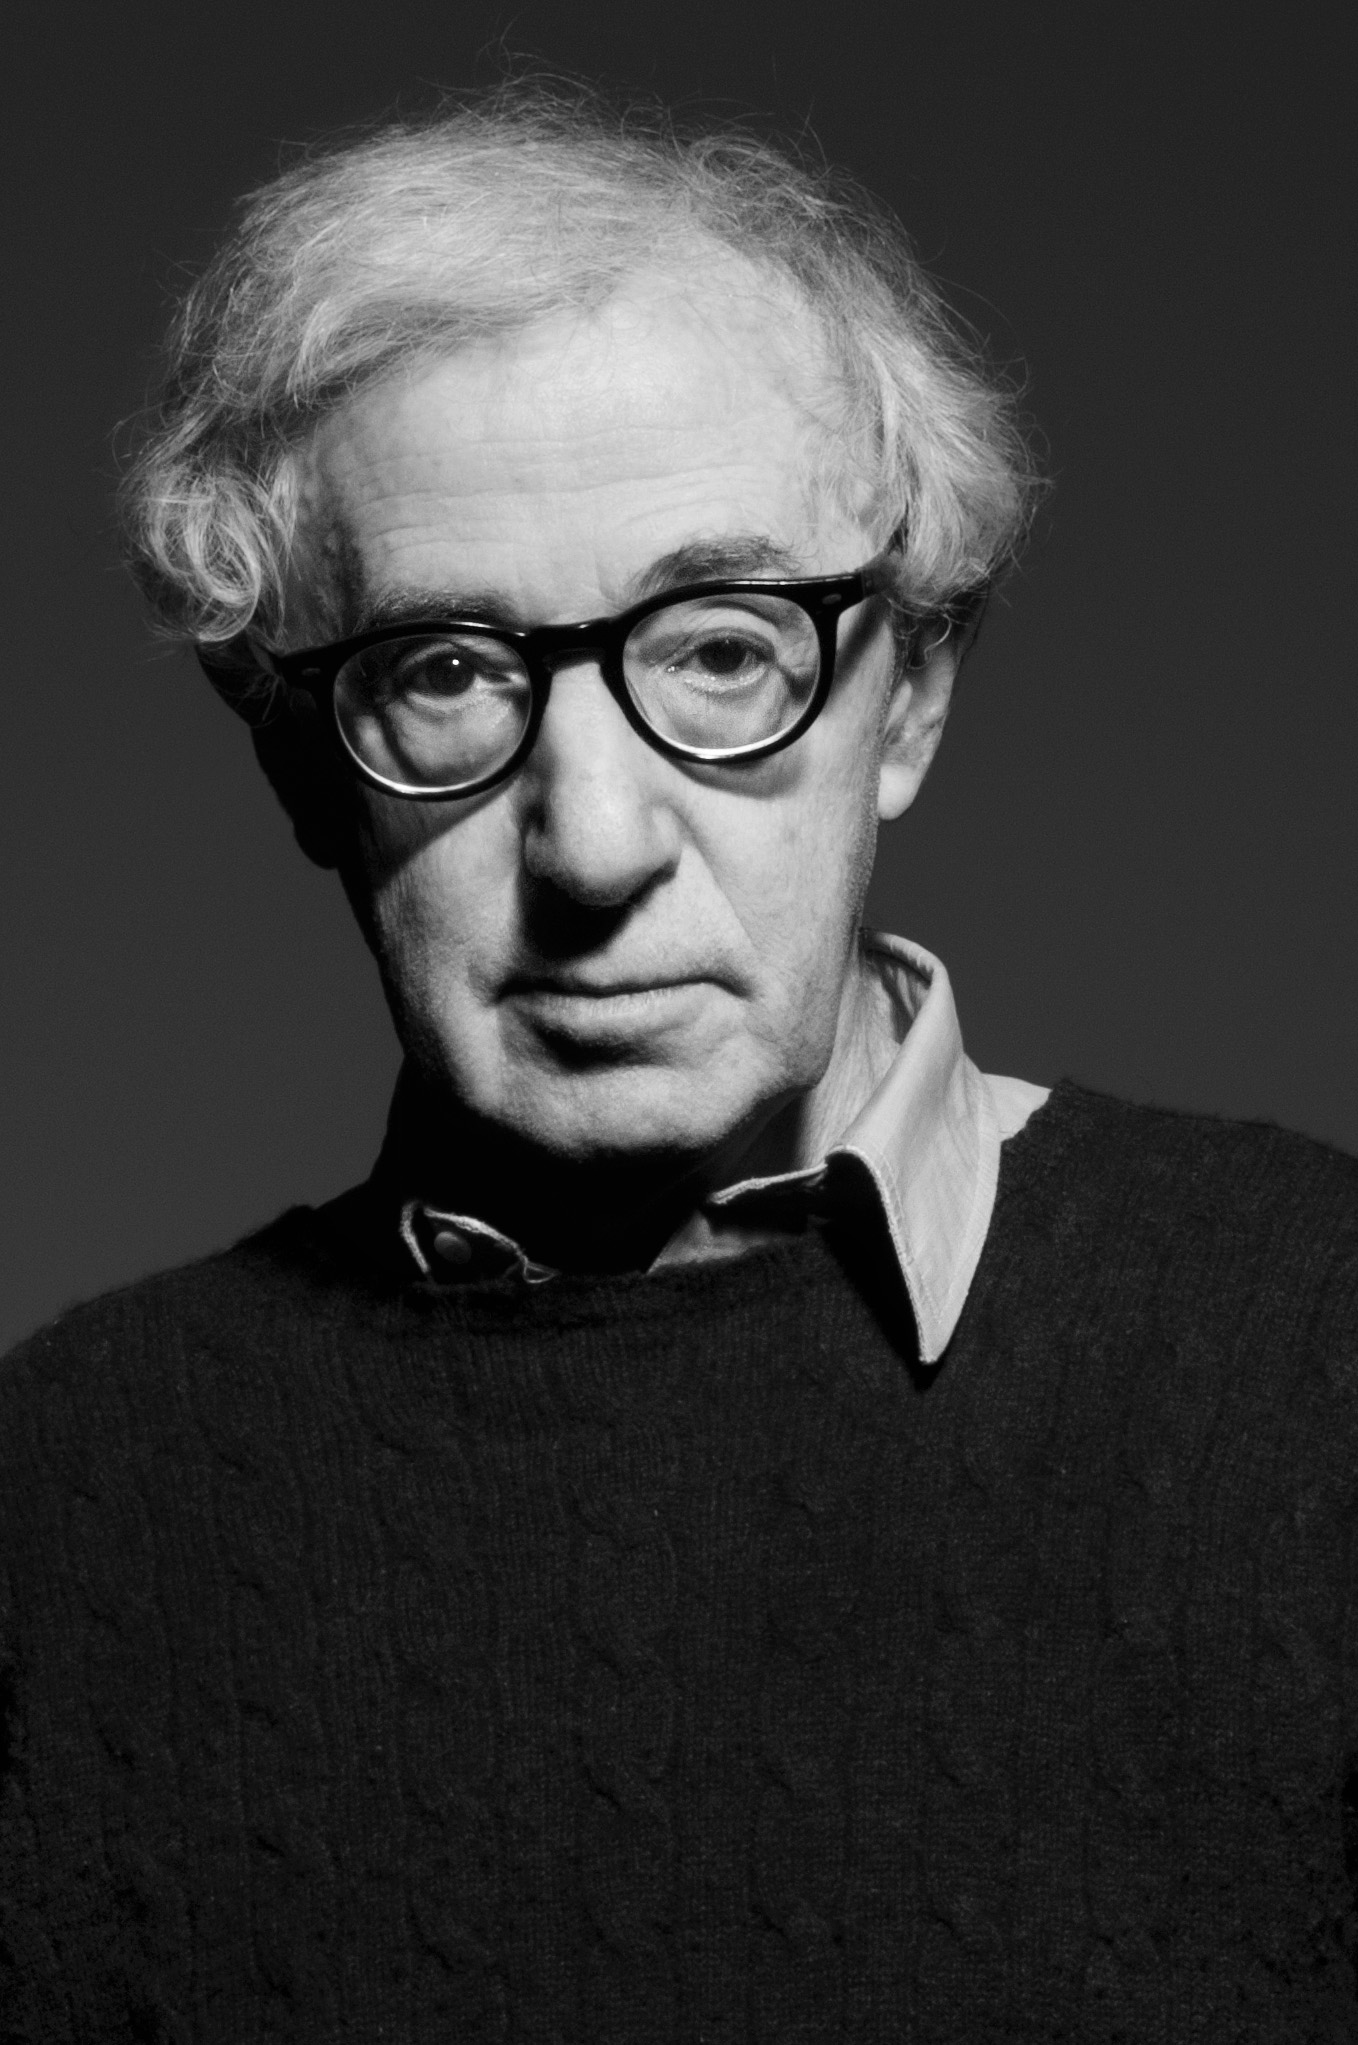 Woody Allen. From  No. 1 With a Bullet.  April 14, 2014 issue.